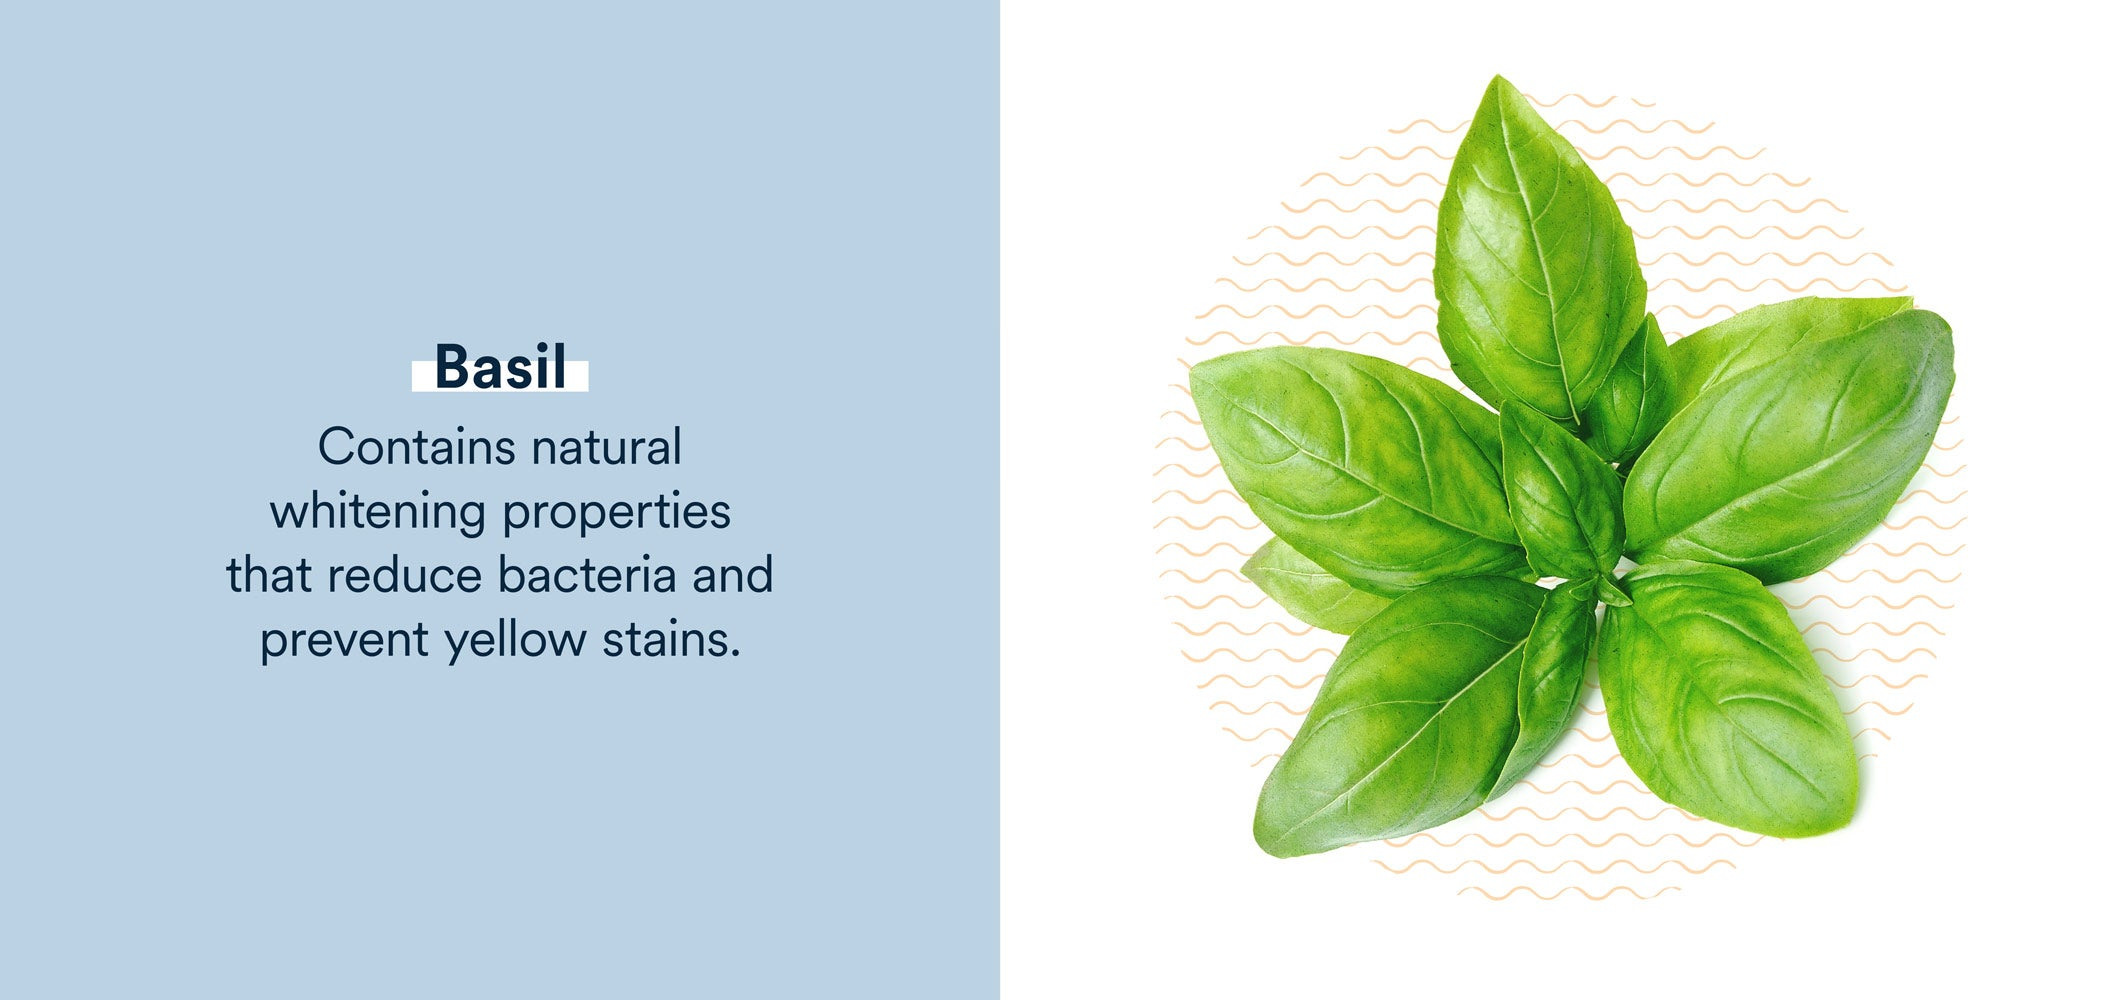 basil contains natural whitening properties